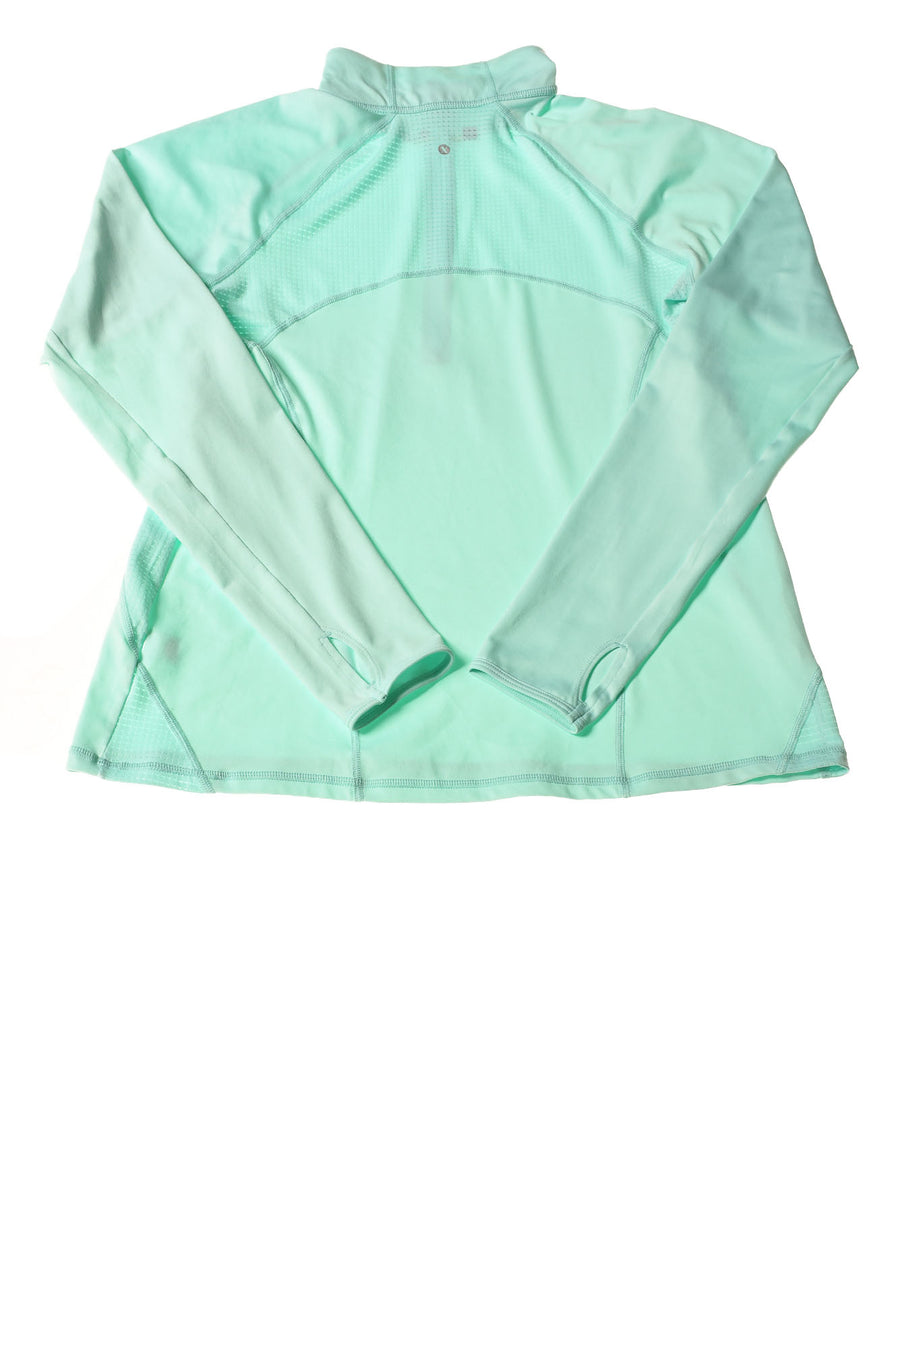 USED Xersion Women's Top Large Aqua